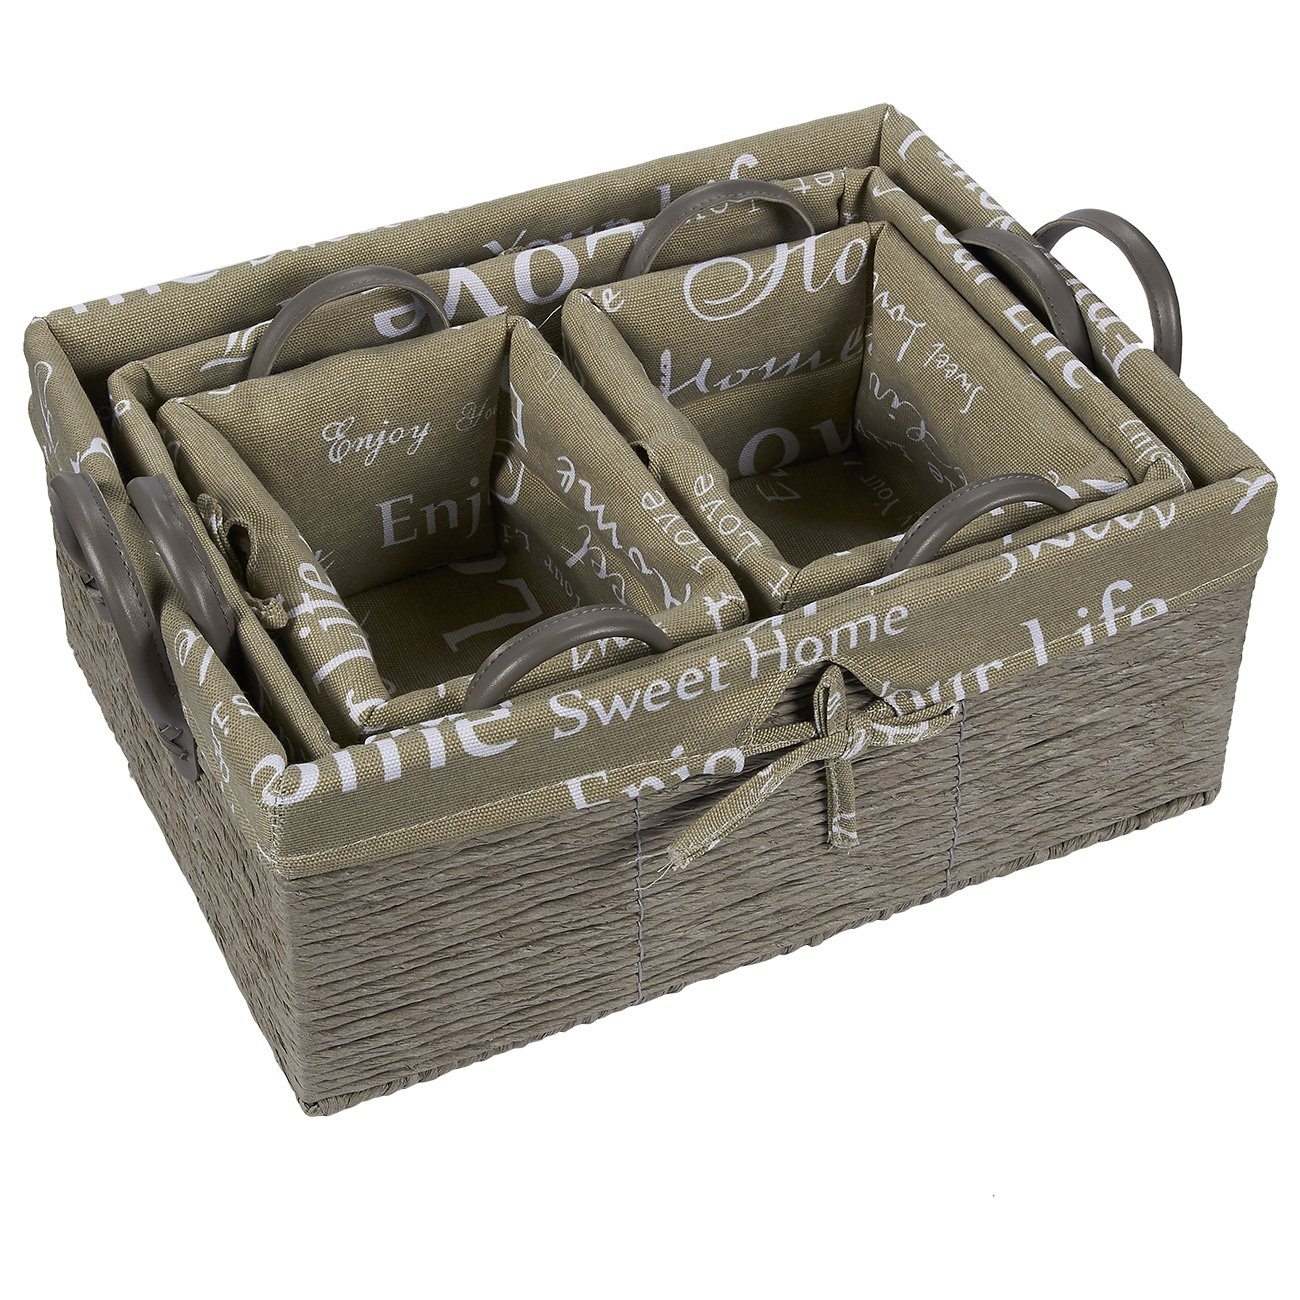 4-Piece Utility Storage Baskets Faux Leather Handles Decorative Organizing Baskets Shelves Small Medium Large Juvale Fabric Storage Container Gray Rope and Home Text Design Woven Nesting Bins